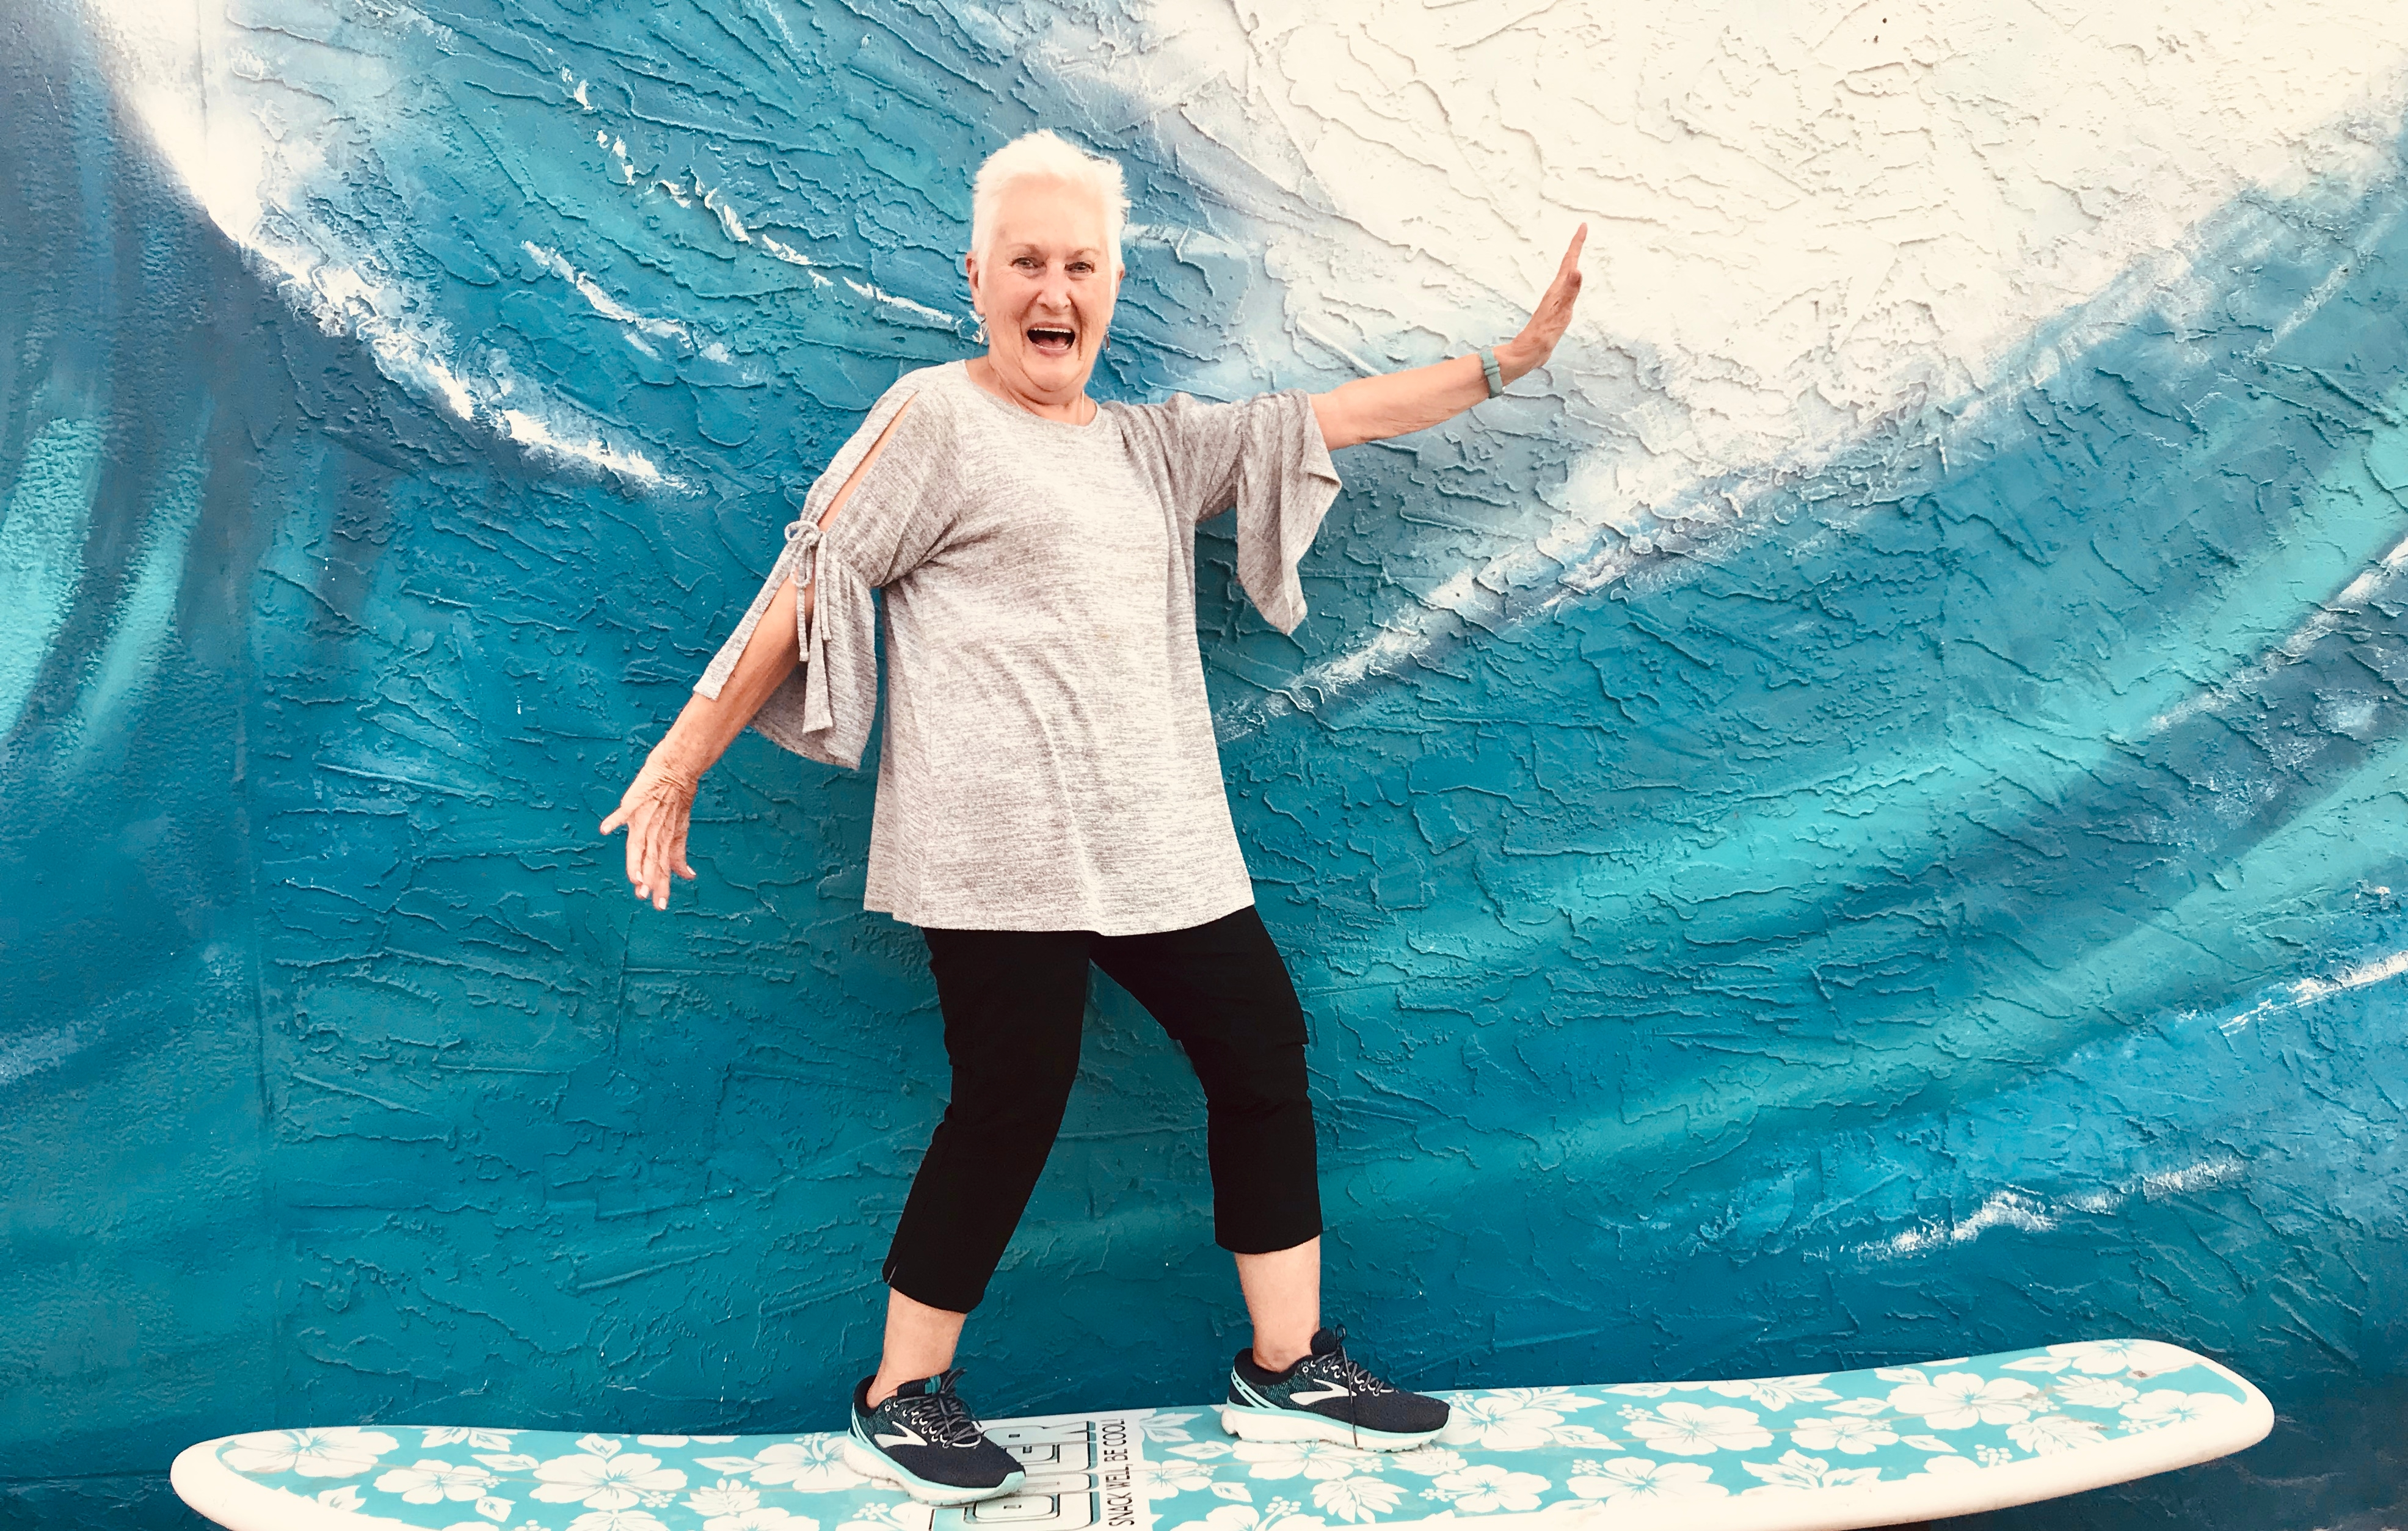 my-young-minded-active-adventurous-and-stylish-mother-grandmother-and-senior-surfing-on-a-surfboard_t20_GJj6me